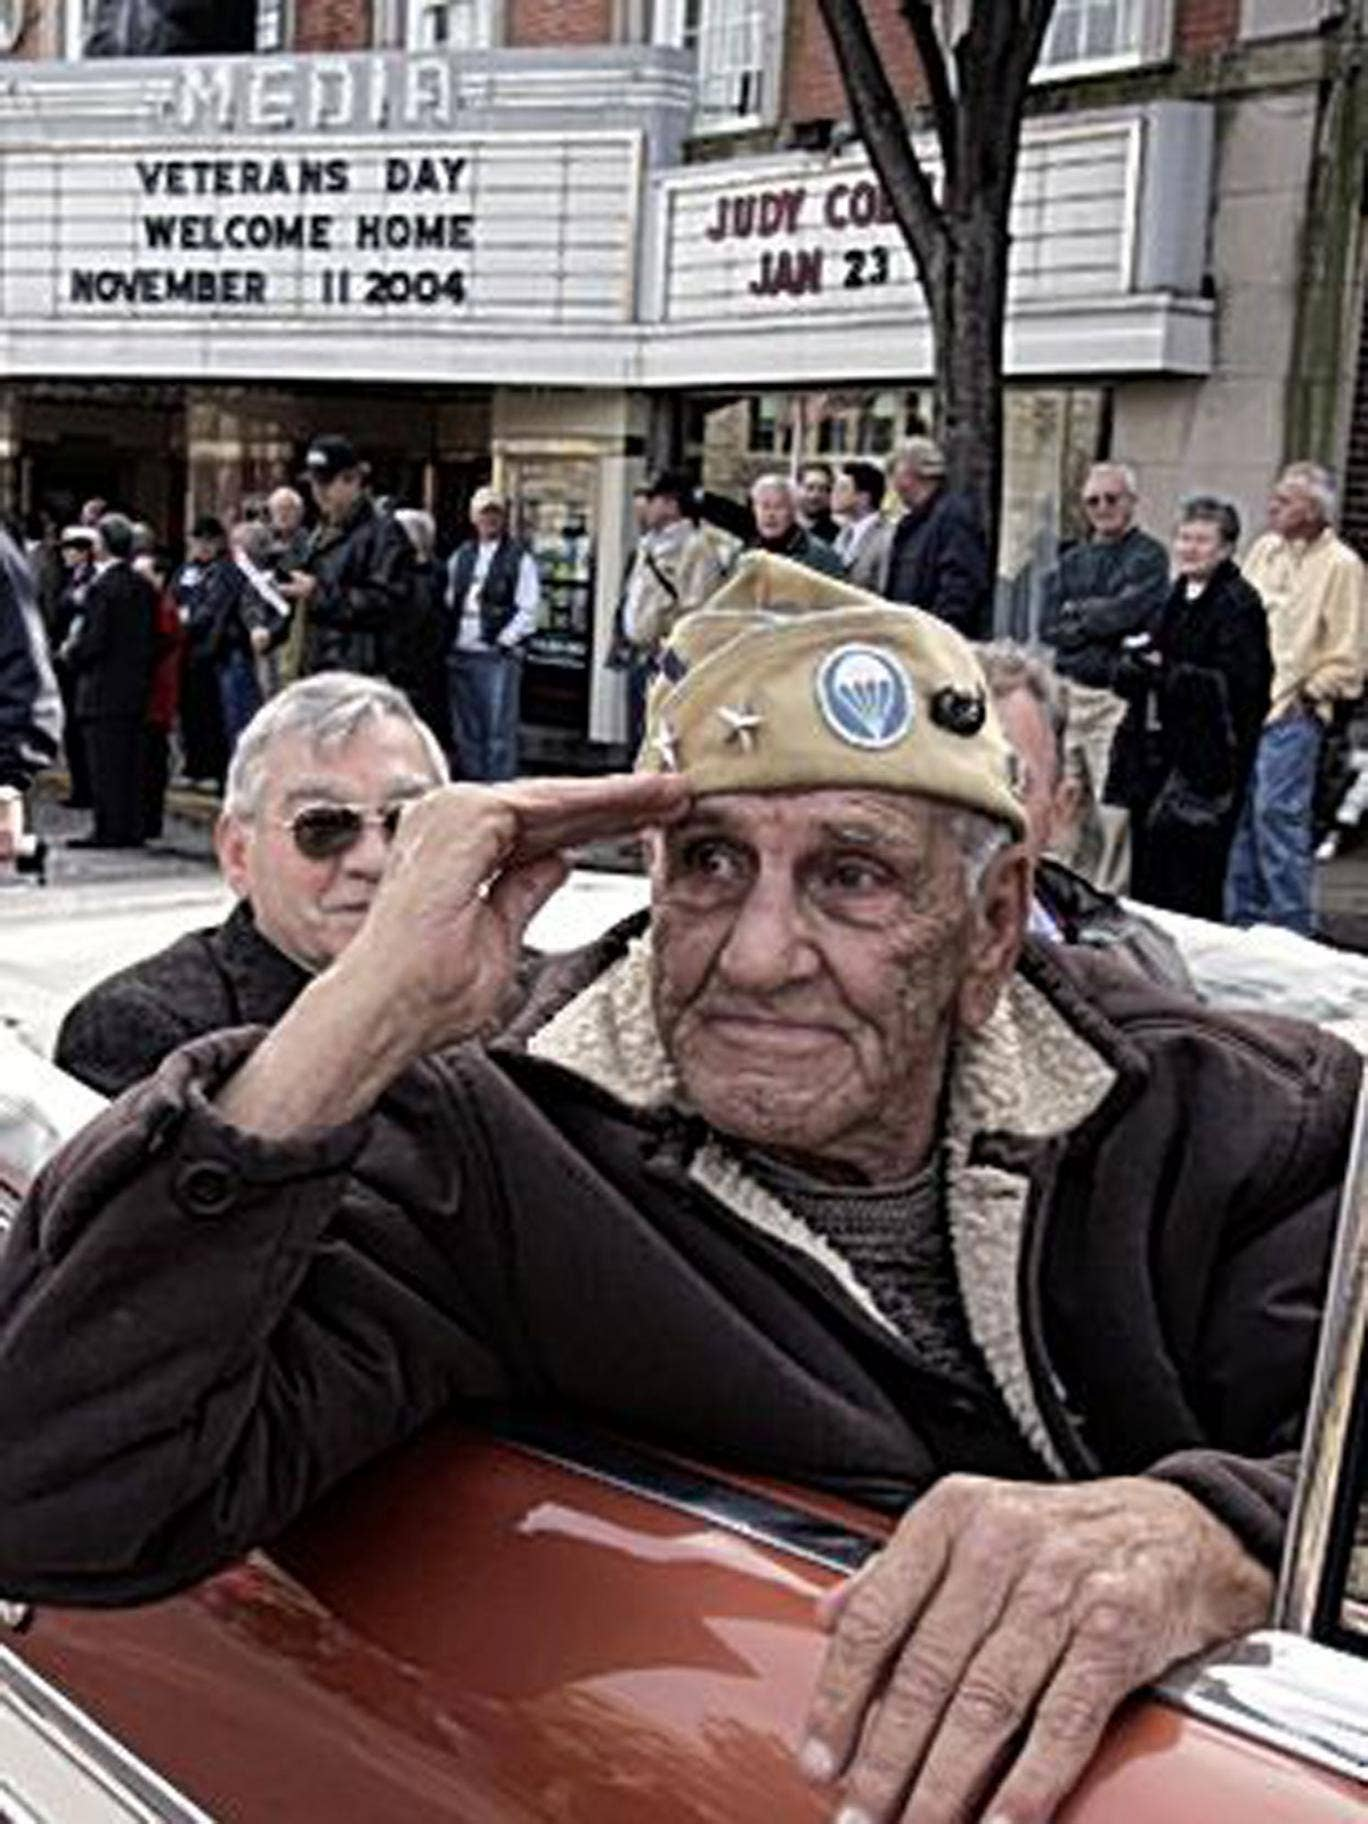 Guarnere takes part in a Veterans Day parade in Media, Pennsylvania in 2004